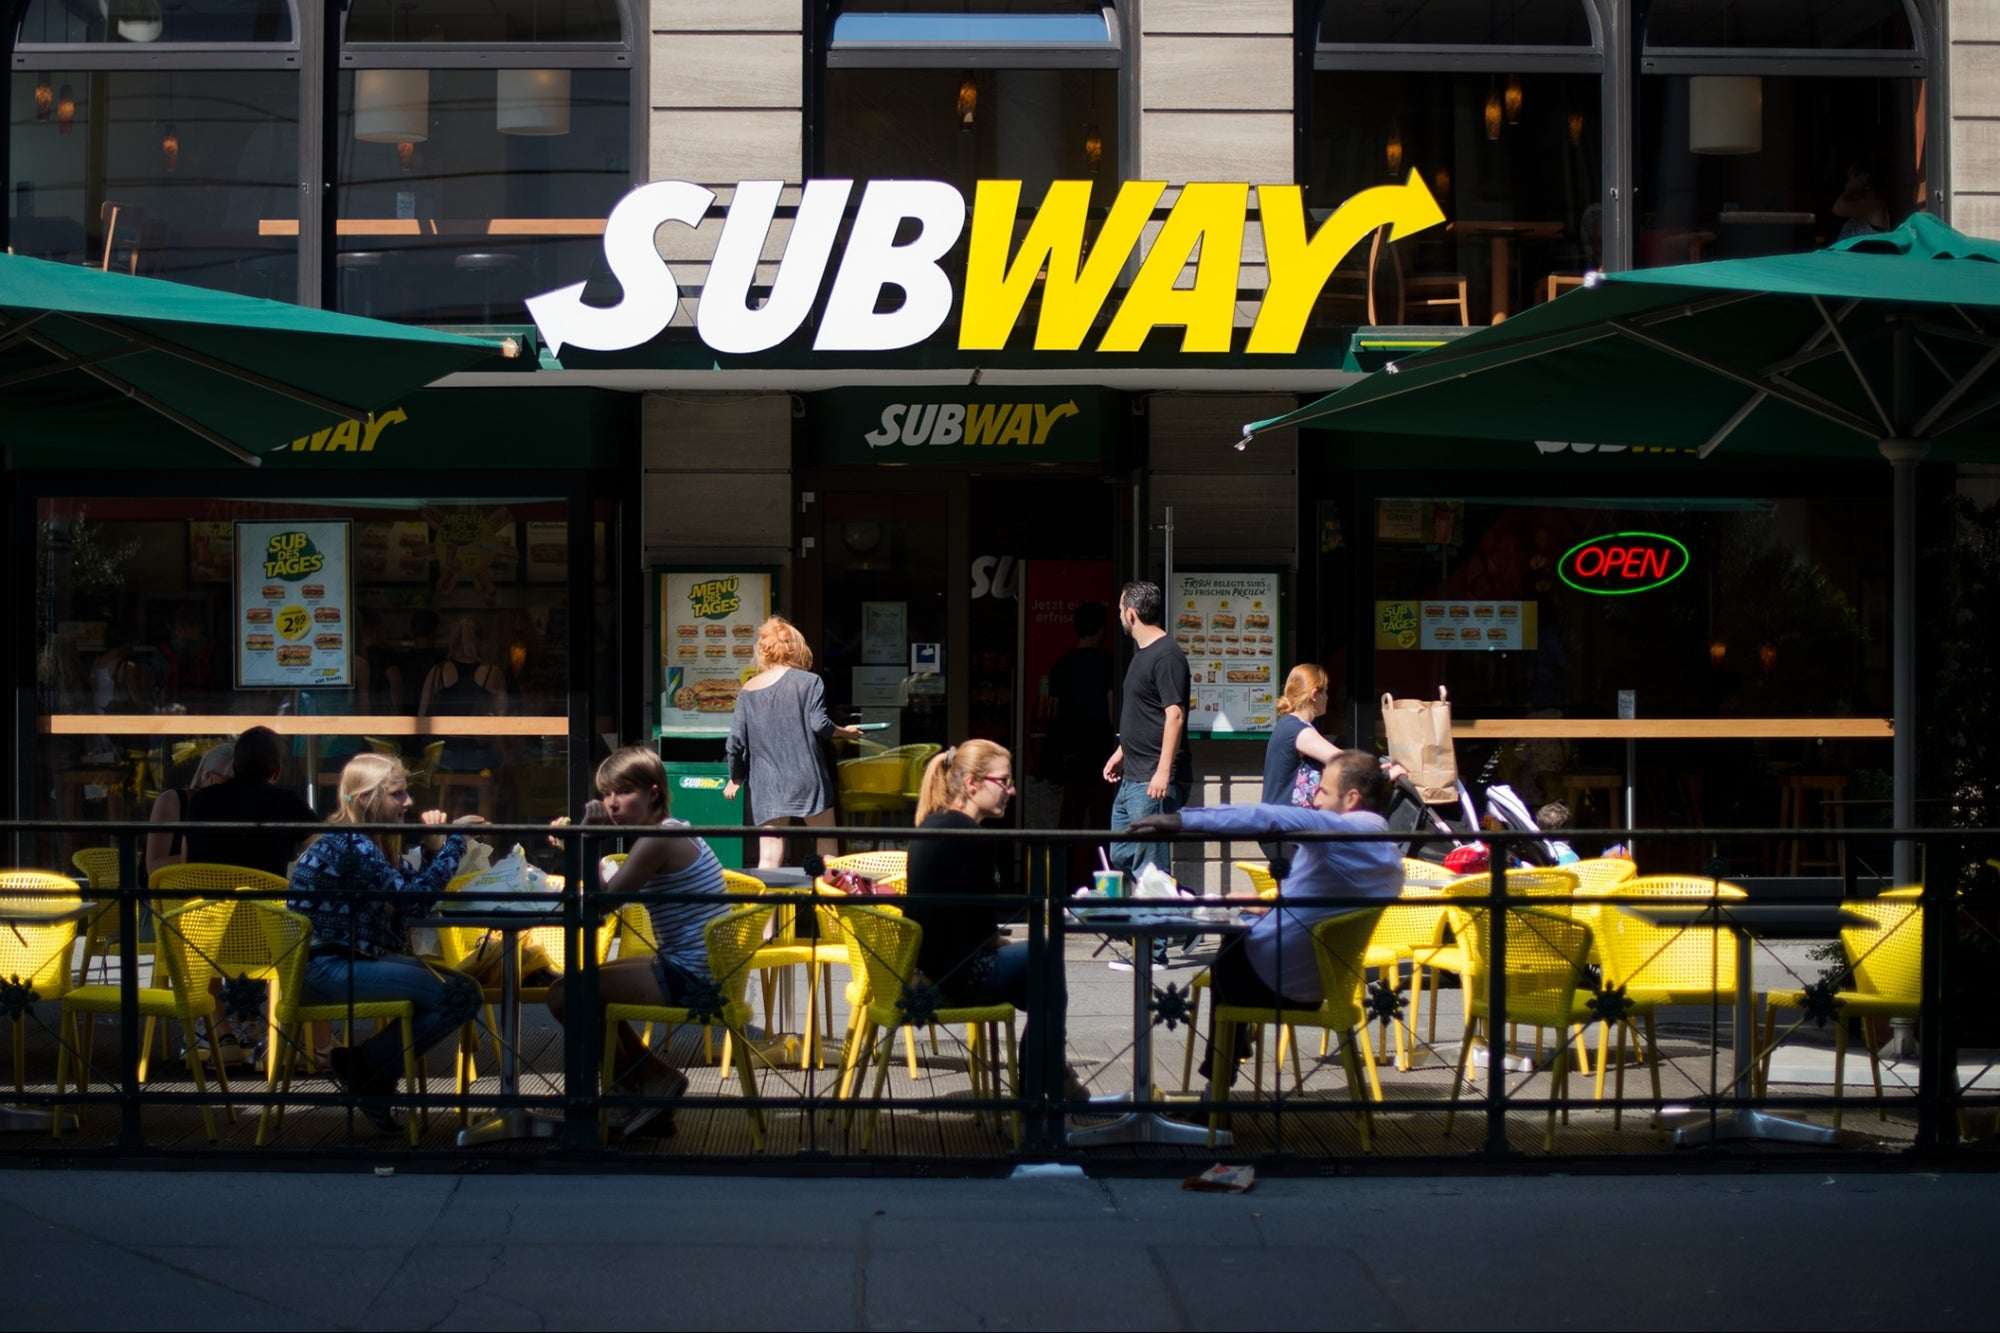 Subway Implements Brutal New Contracts for Franchisees